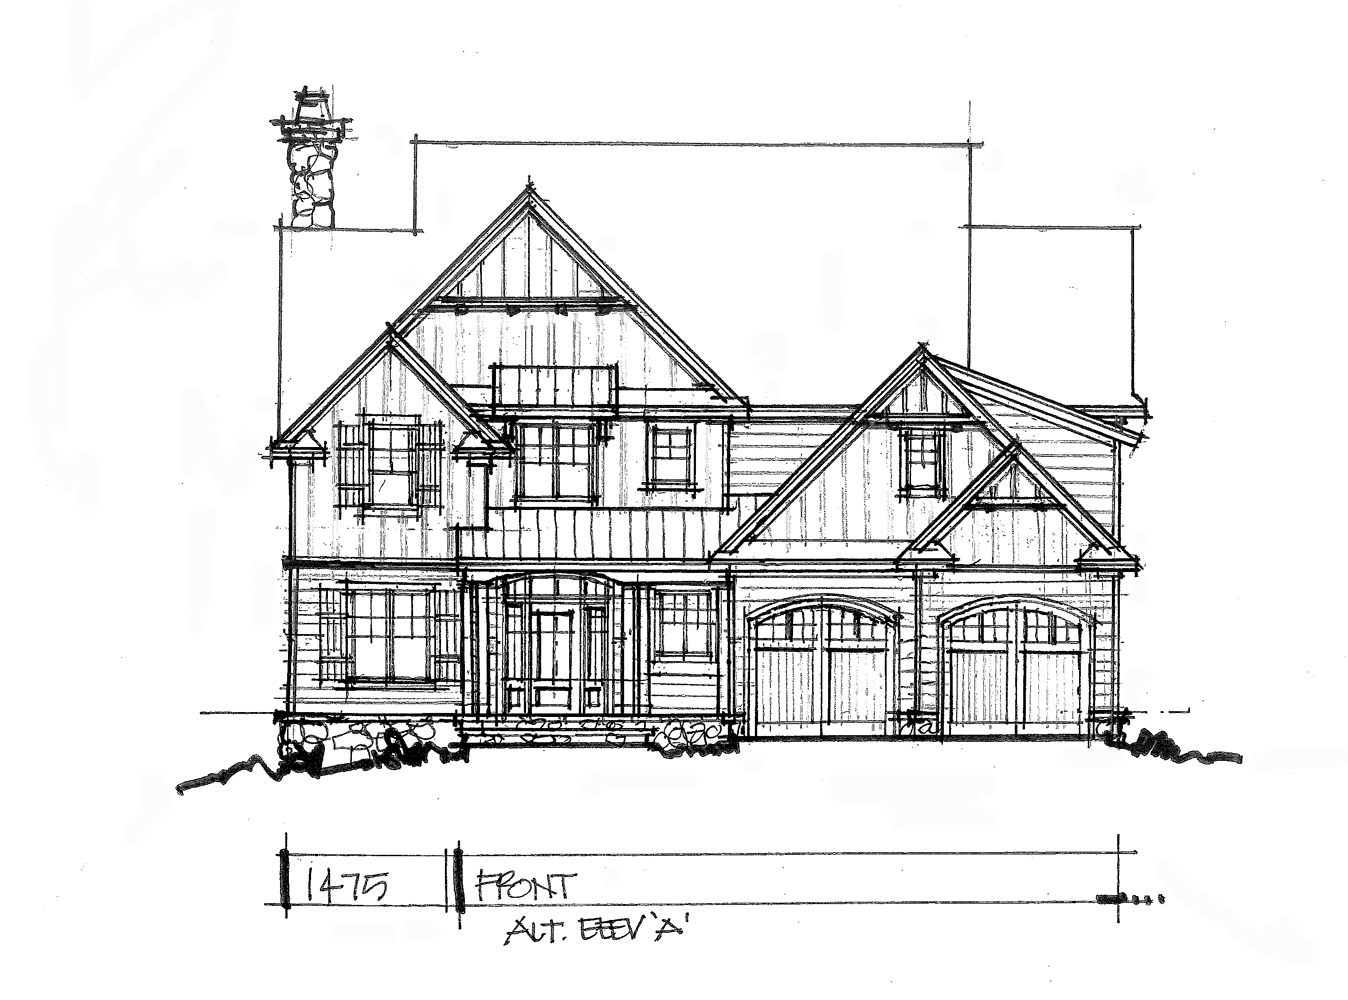 Check out front elevation A for conceptual design 1475.